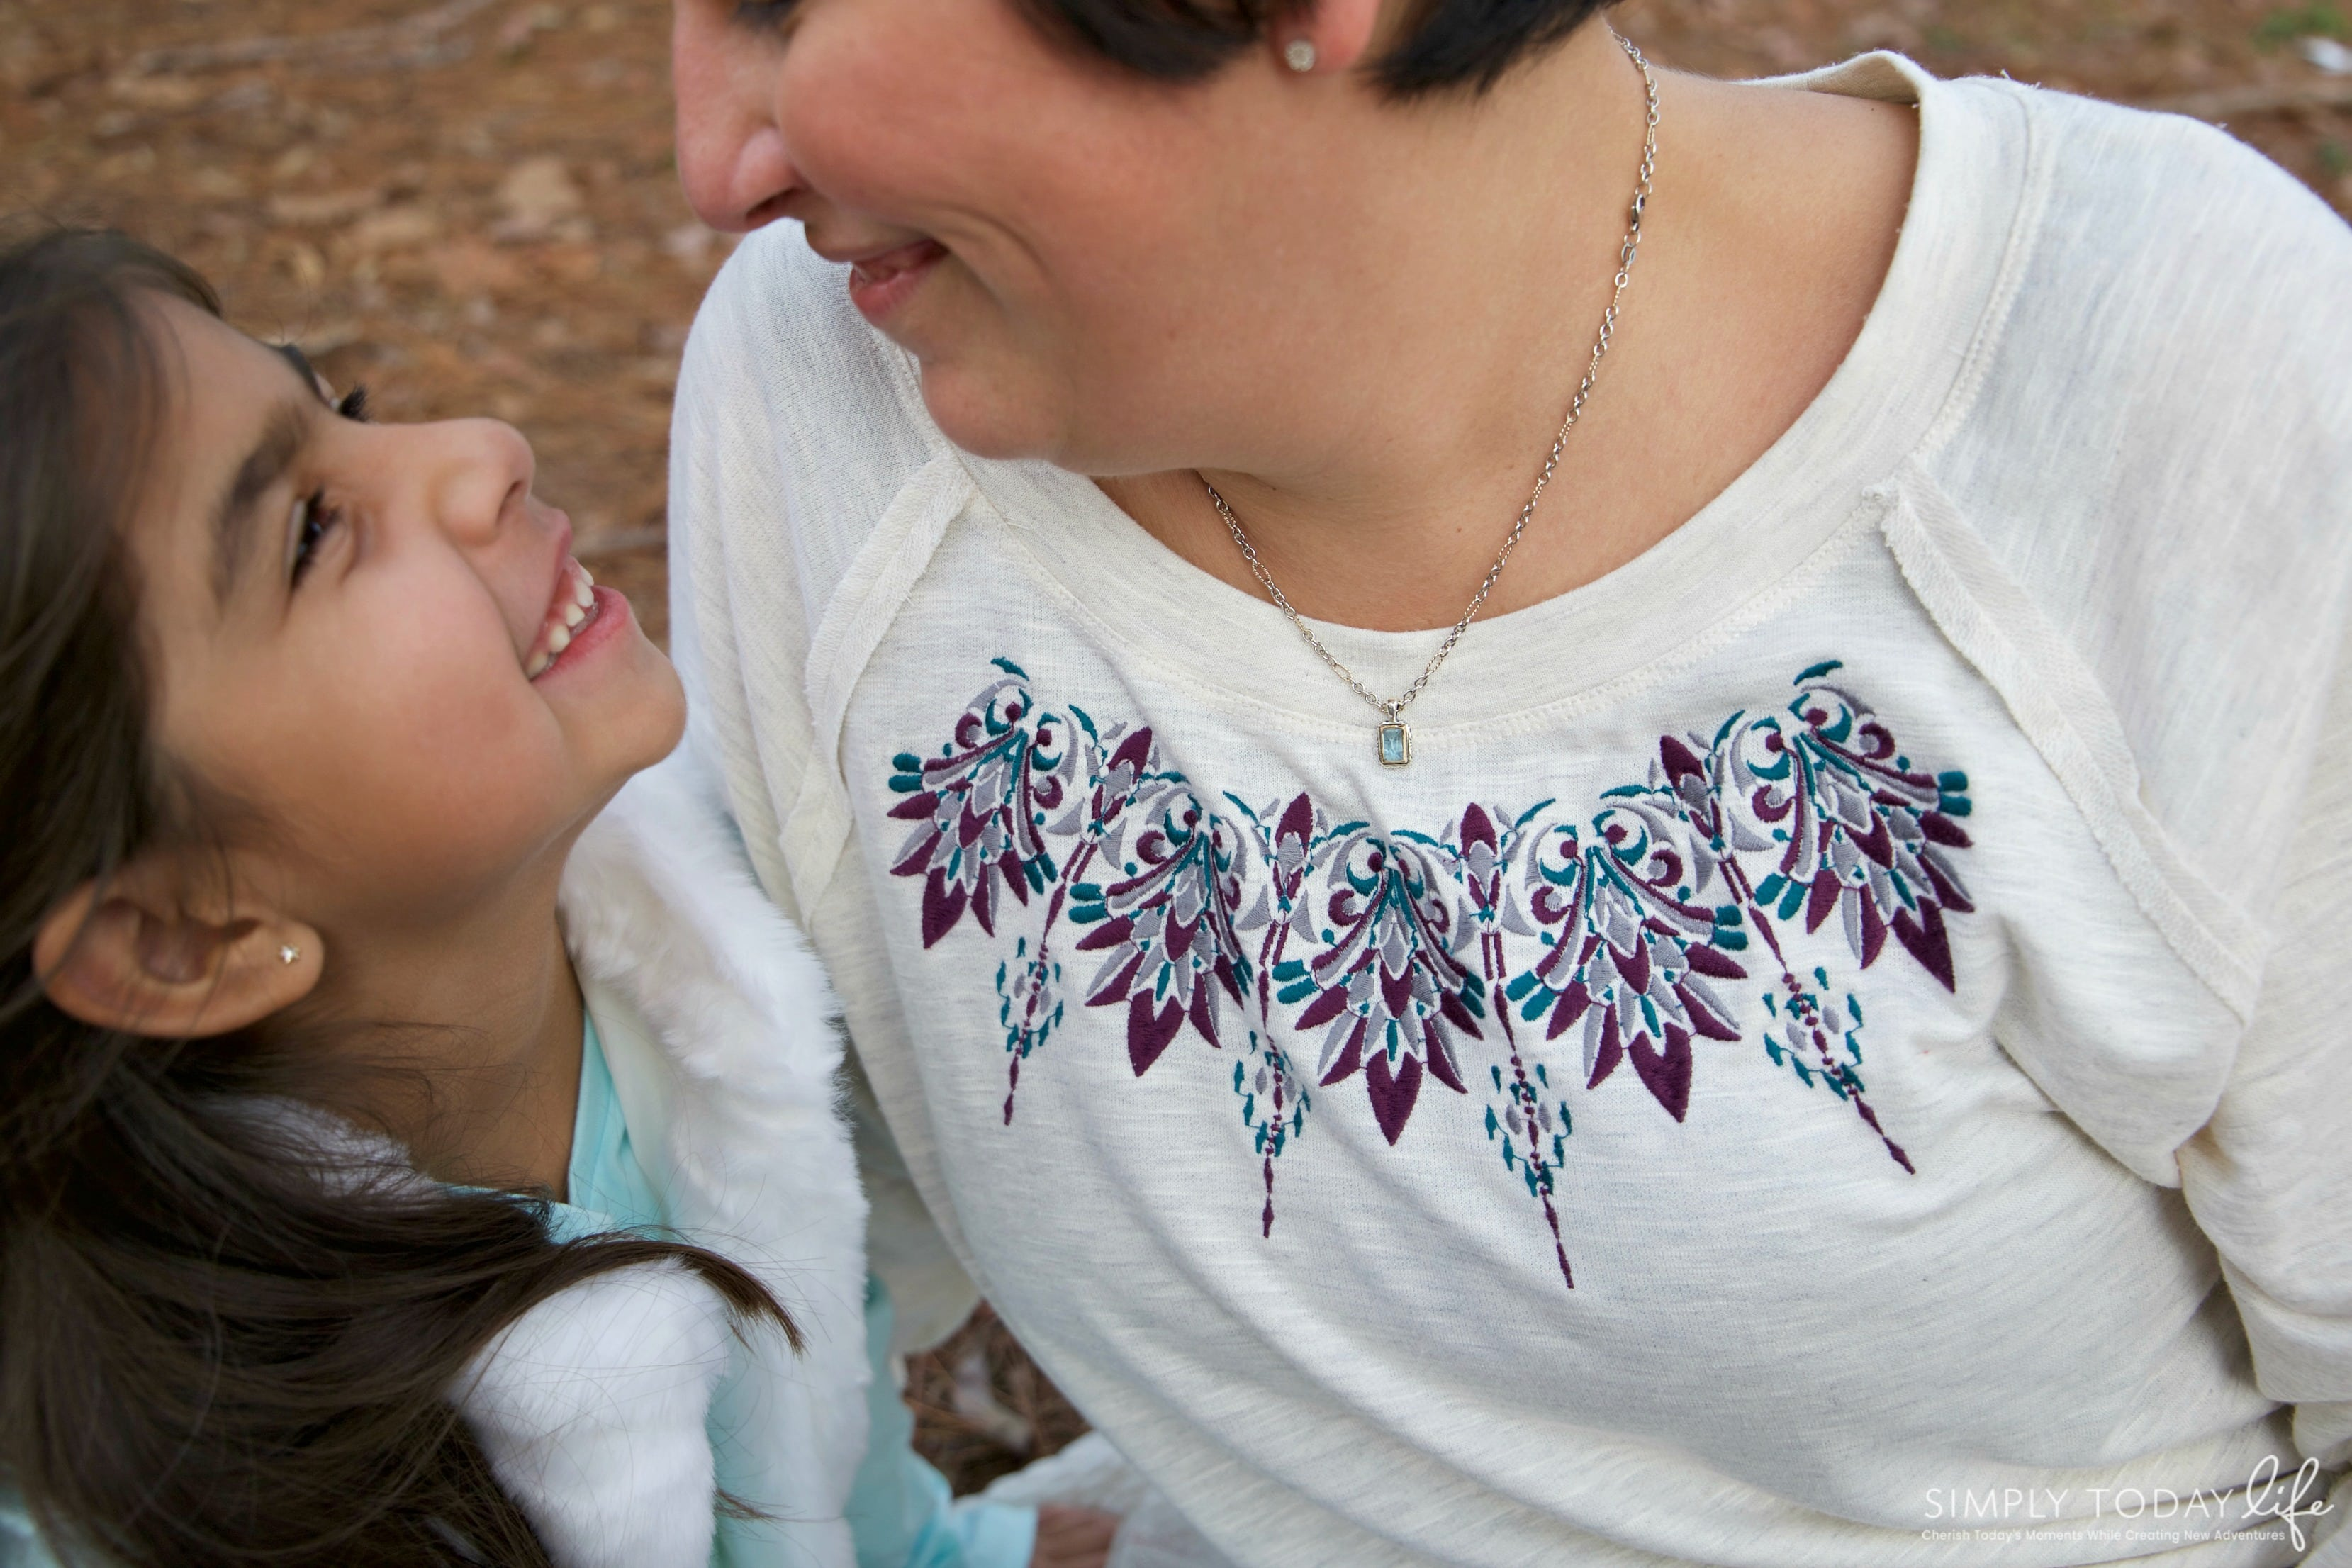 A Sentimental Holiday Gift For Mom With James Avery Artisan Jewelry - simplytodaylife.com